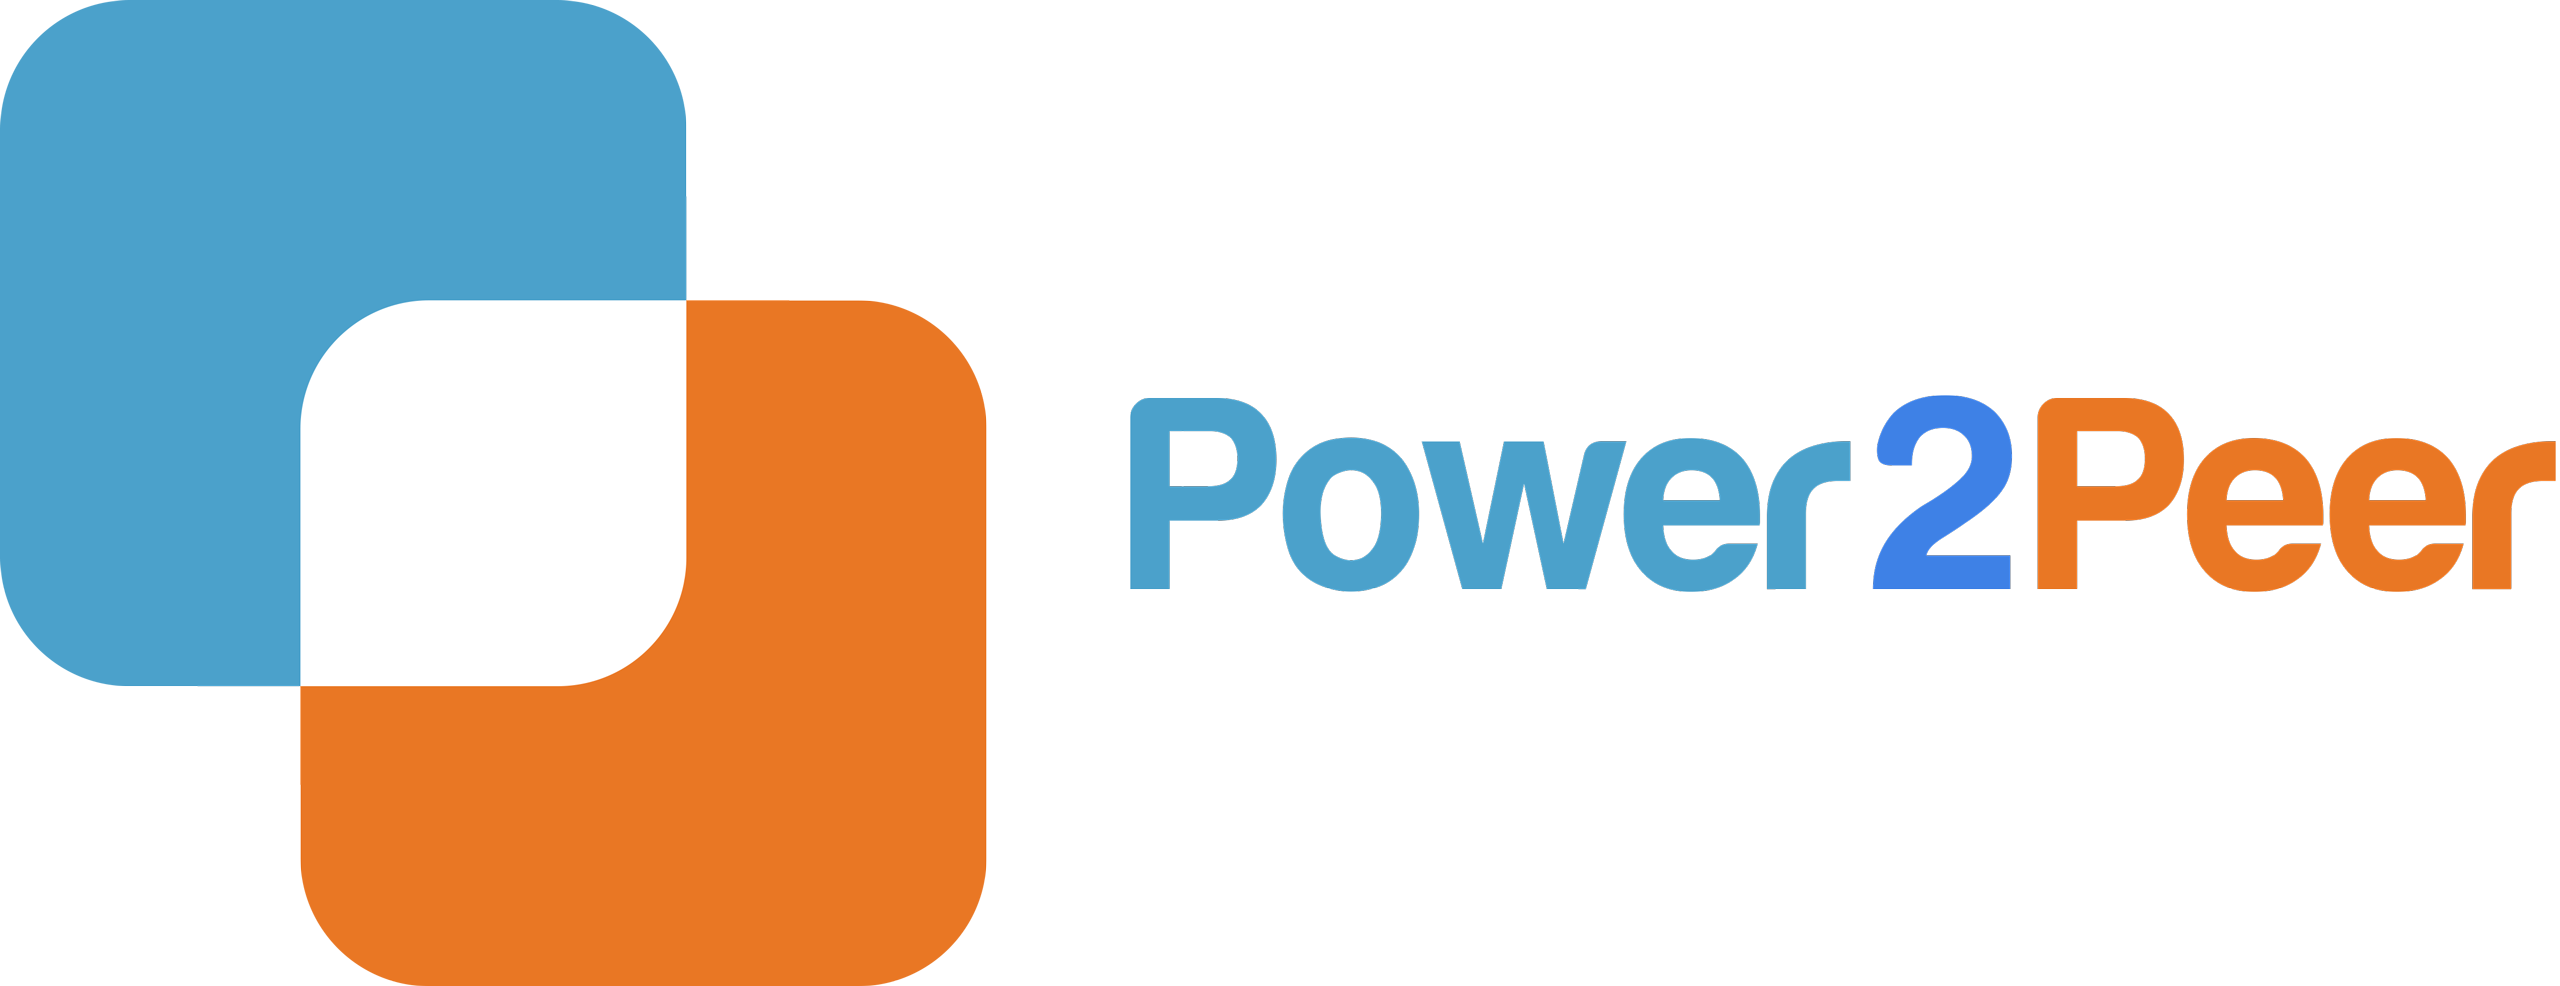 Press Release: Power2Peer Launches Crowdfunding Campaign